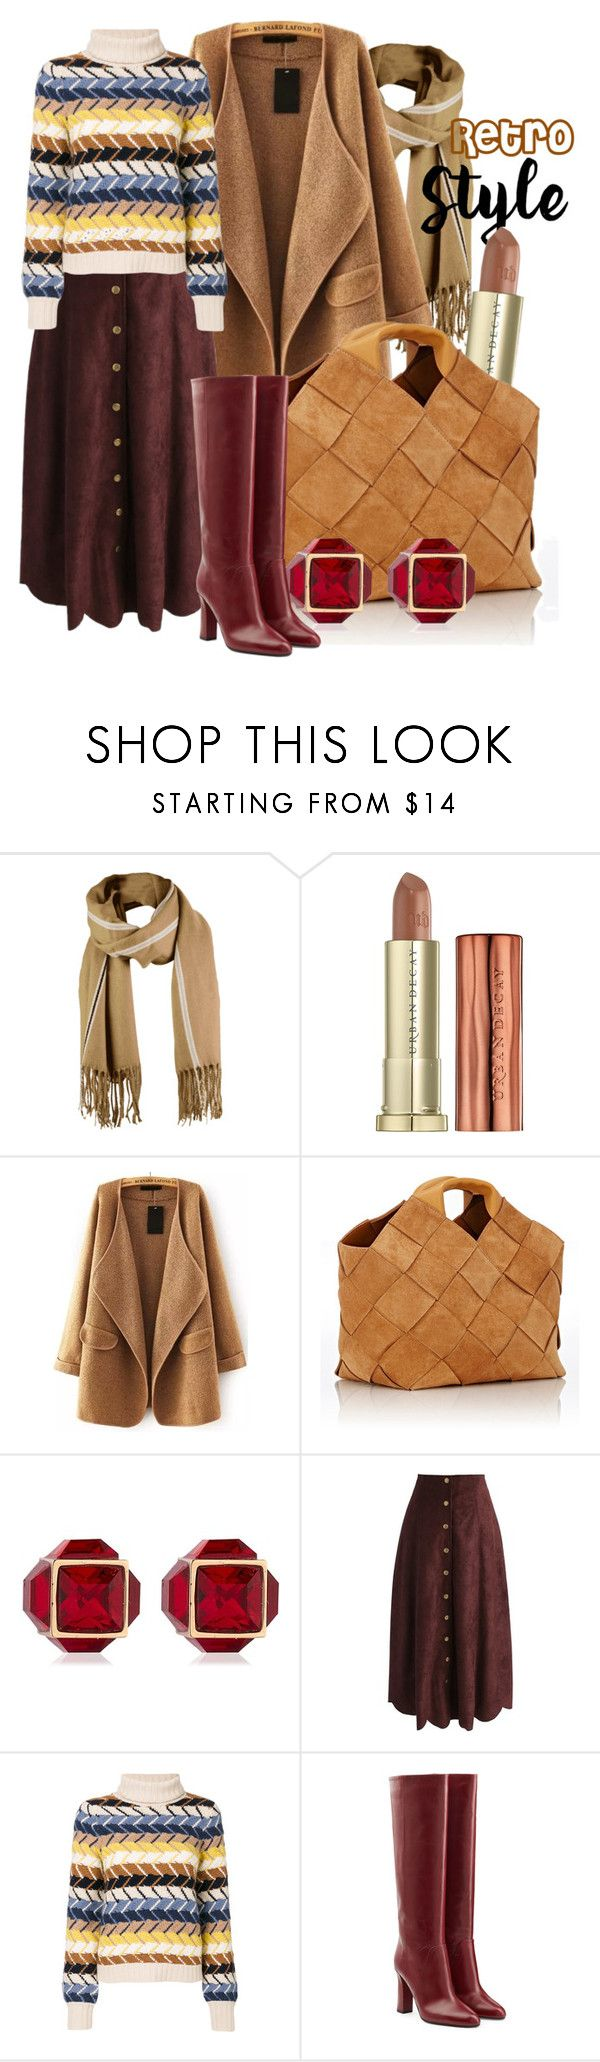 """""""Retro Style"""" by baratheon-girl ❤ liked on Polyvore featuring Urban Decay, WithChic, Loewe, Vita Fede, Chicwish, Chloé and Diane Von Furstenberg"""